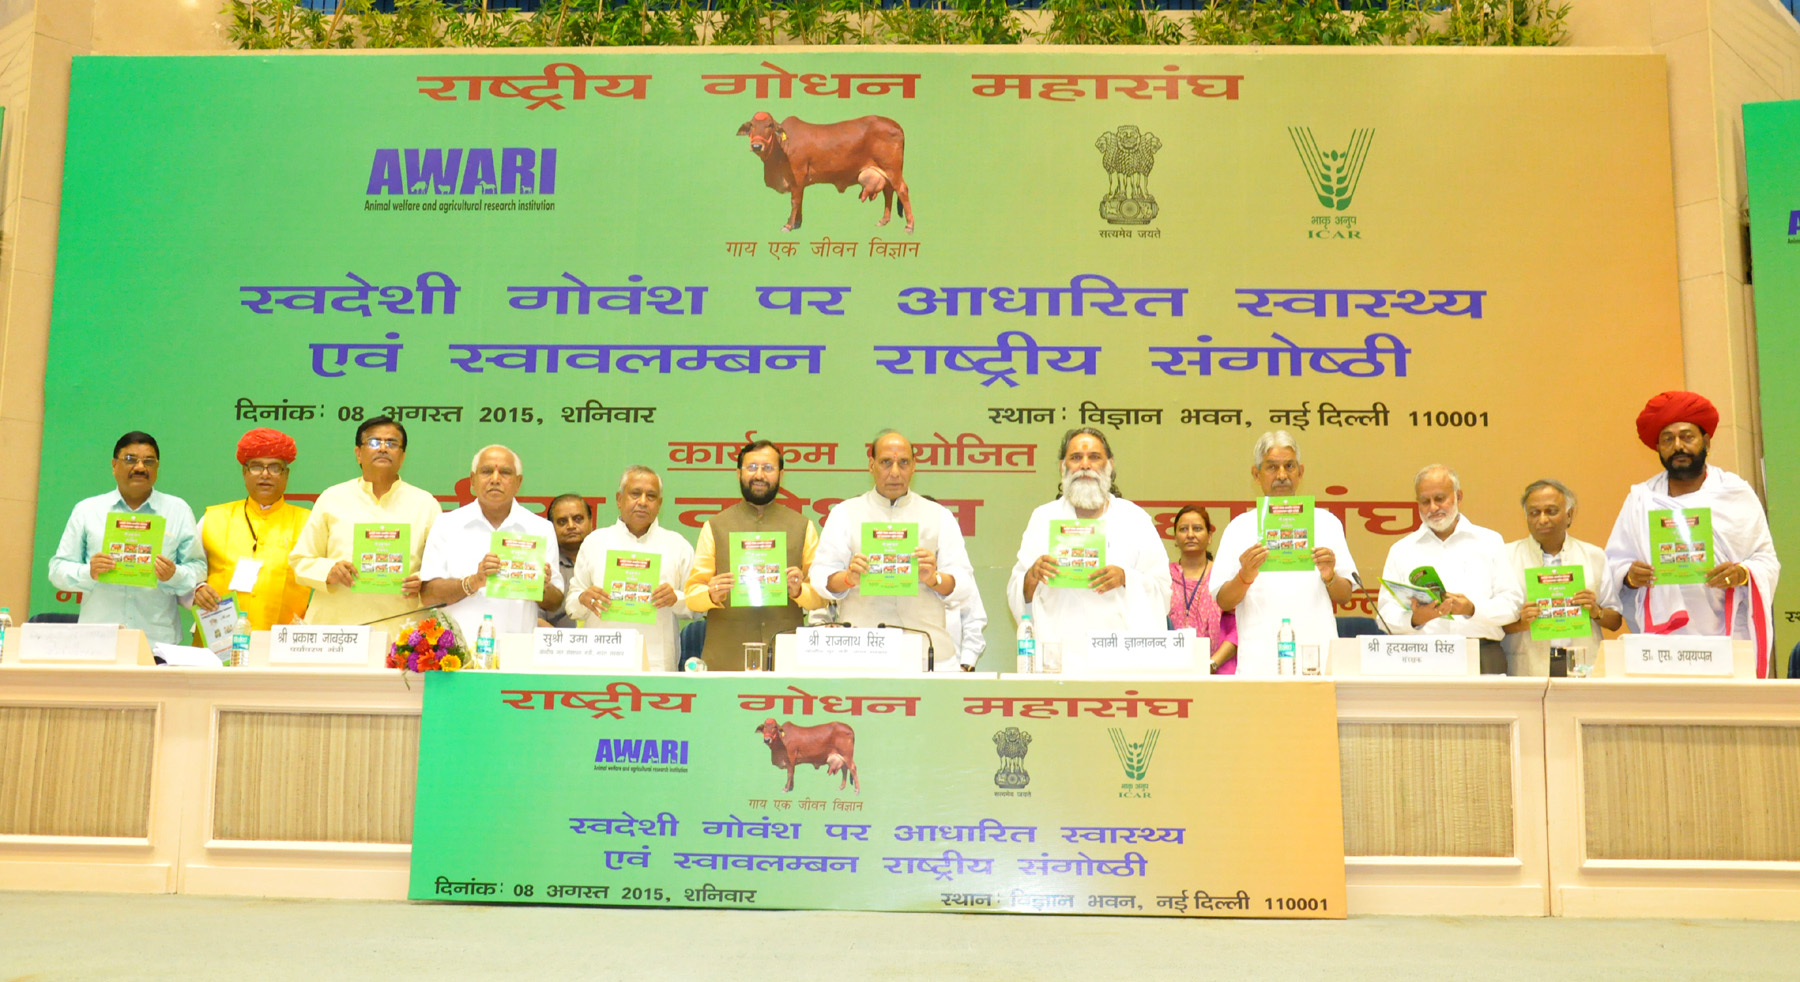 The Union Home Minister, Shri Rajnath Singh releasing a booklet at a function, organised by the Indian Council of Agricultural Research and Animal Welfare and Agricultural Research Institution, in New Delhi on August 08, 2015.  The Minister of State for Environment, Forest and Climate Change (Independent Charge), Shri Prakash Javadekar and other dignitaries are also seen.